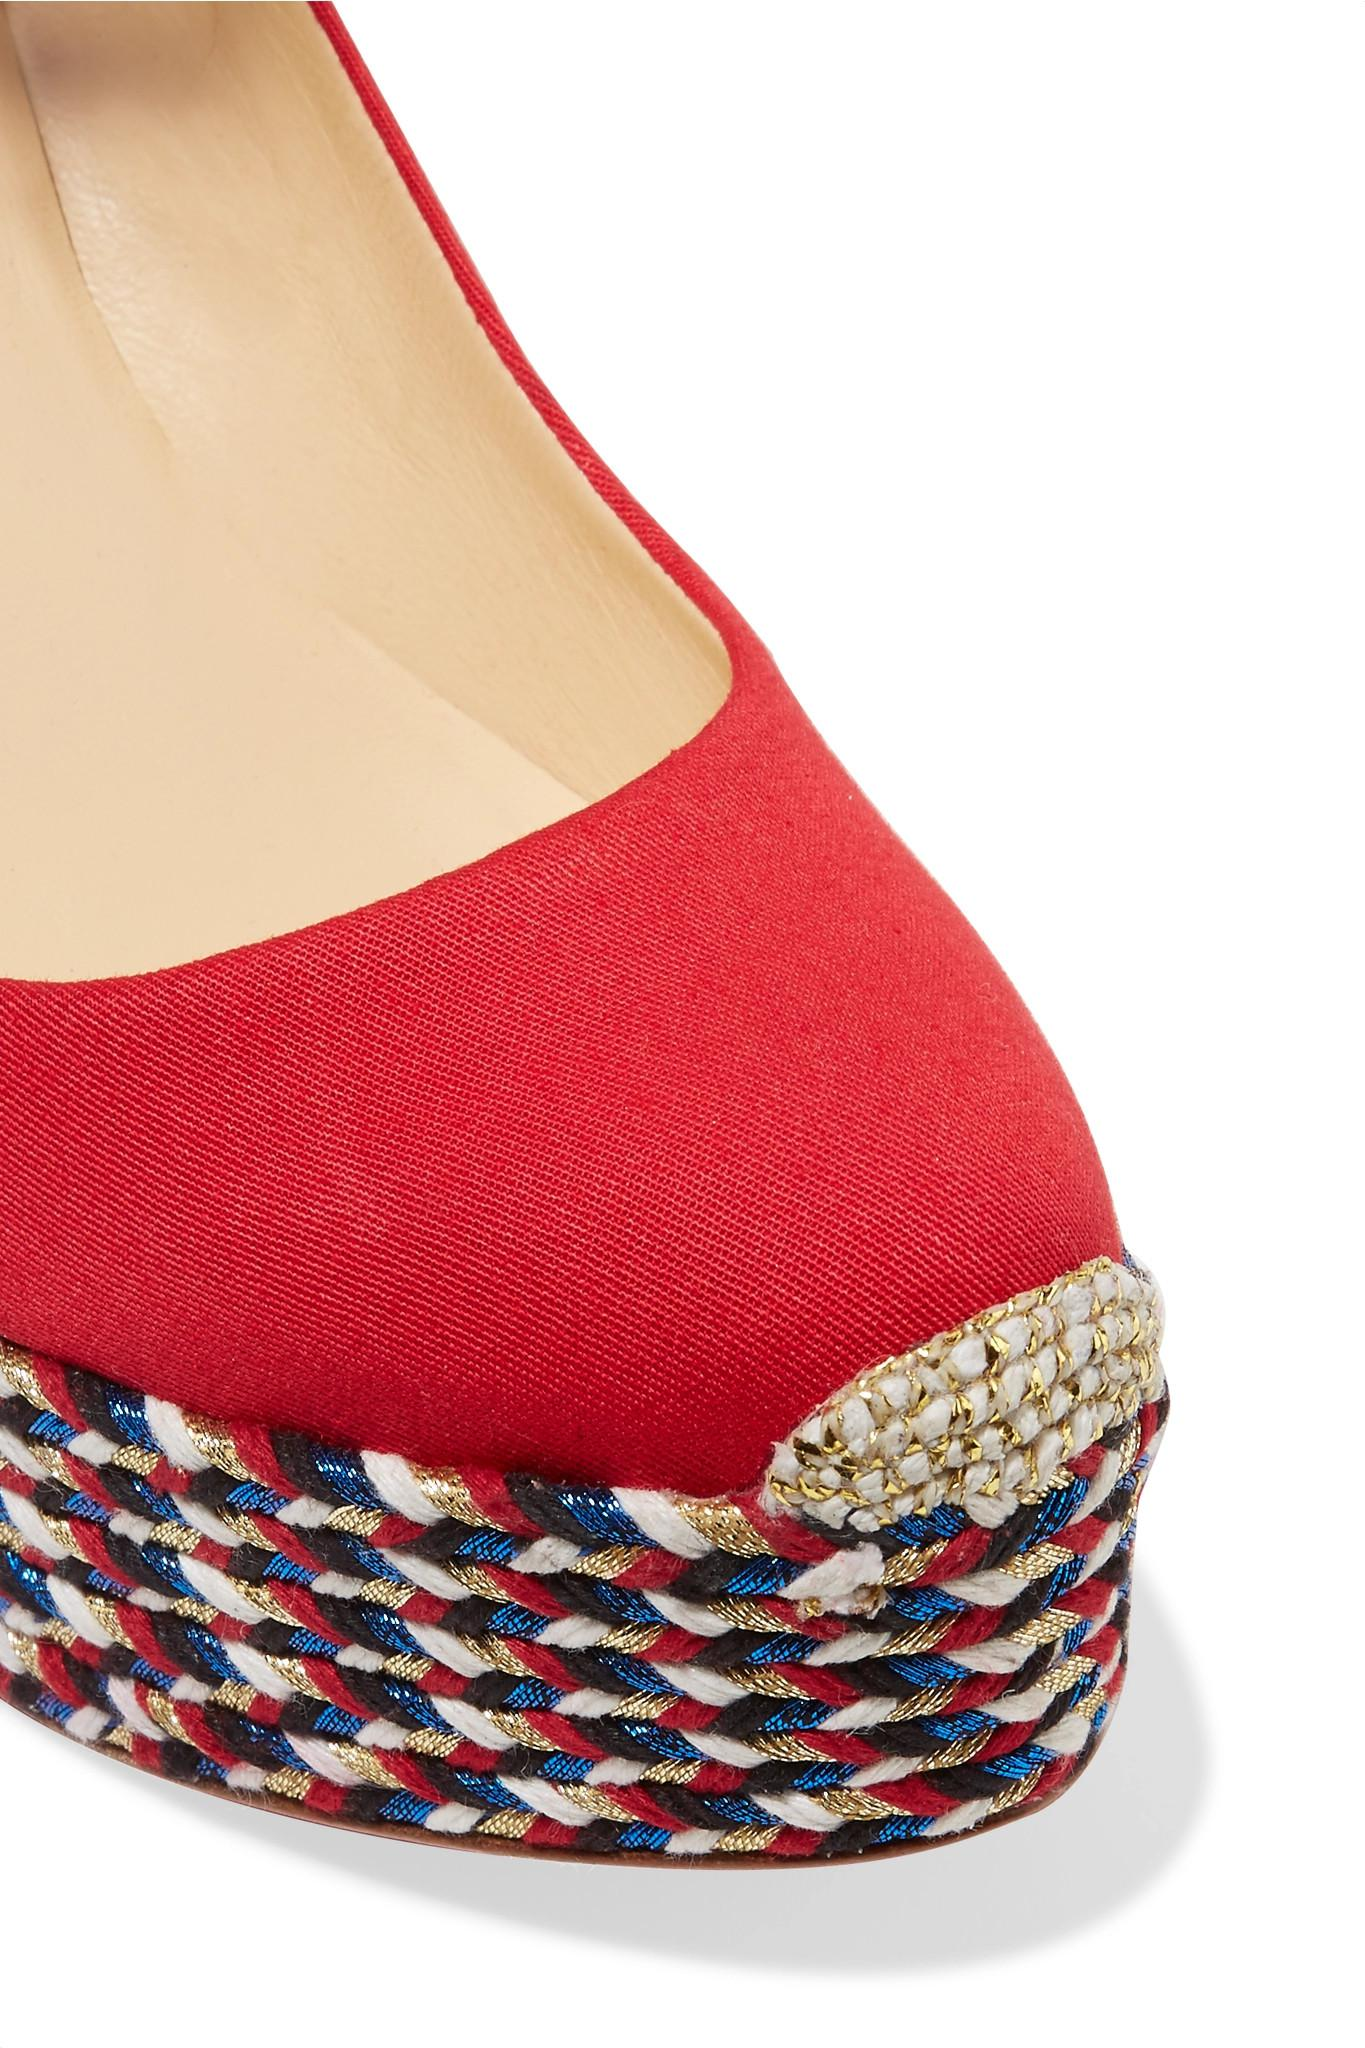 42828f40c34 Christian Louboutin - Red Barbaria Zeppa 120 Canvas Wedge Espadrilles -  Lyst. View fullscreen